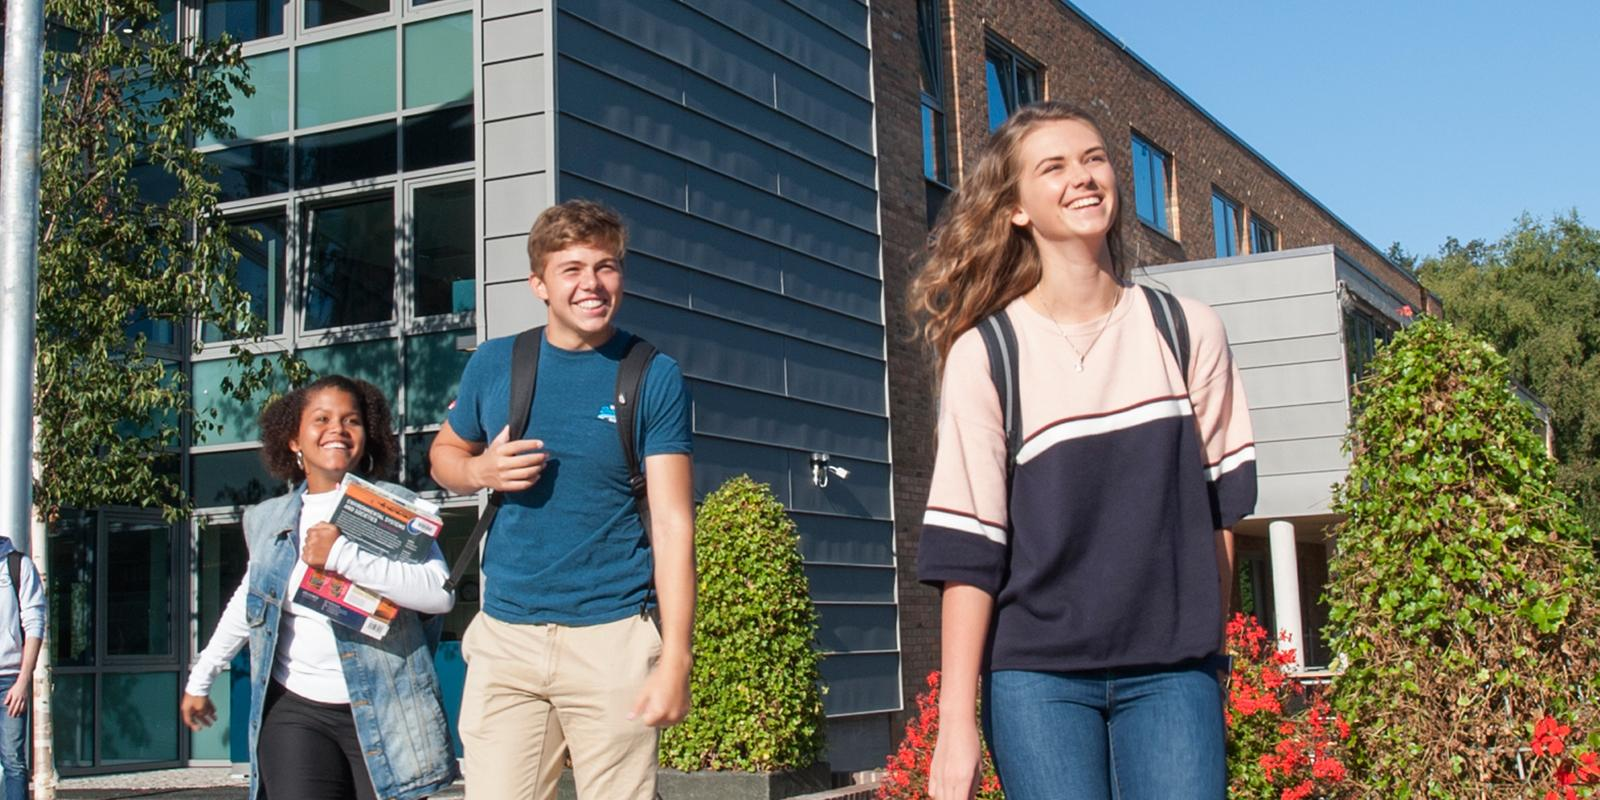 Smiling students walking together out of ACS Cobham campus building